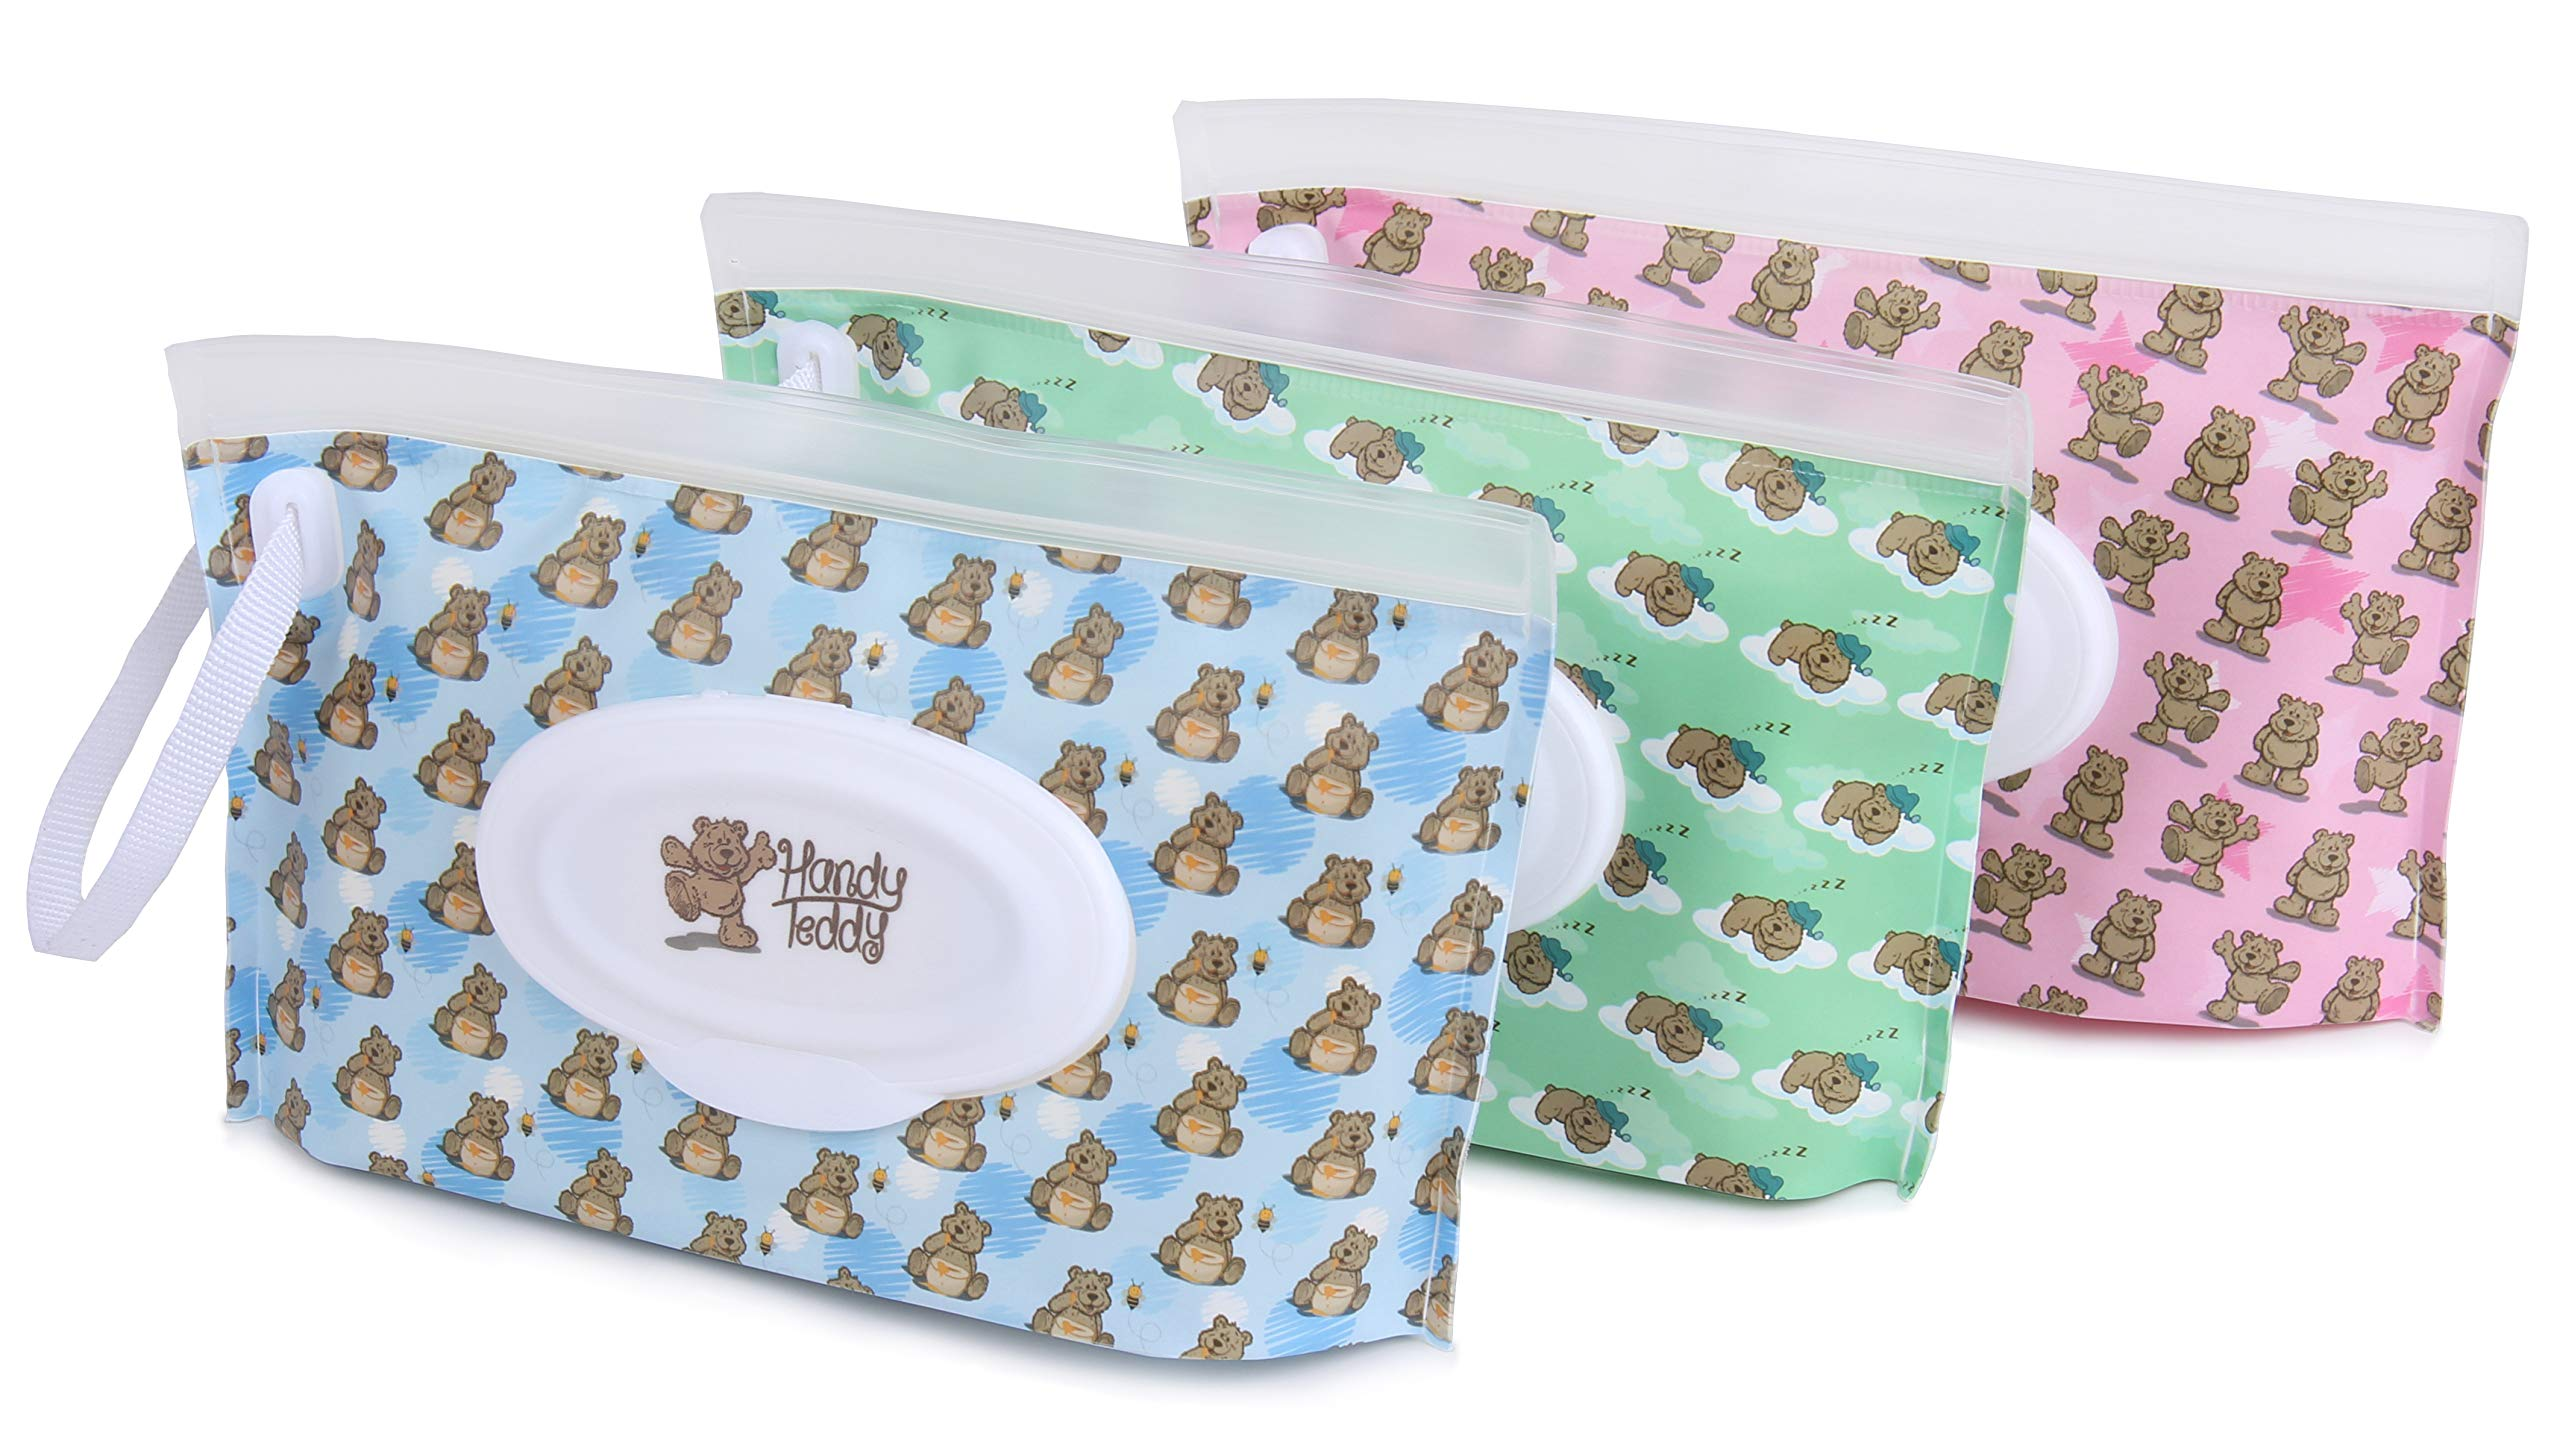 Handy Teddy Wet Wipe Pouch [Set of 3] Reusable Refillable Clutch Dispenser Holder Case for Baby or Personal Use – BPA-Free Sanitary – Pouch Carries 30 Wipes Min – Convenient and Great for Travel!